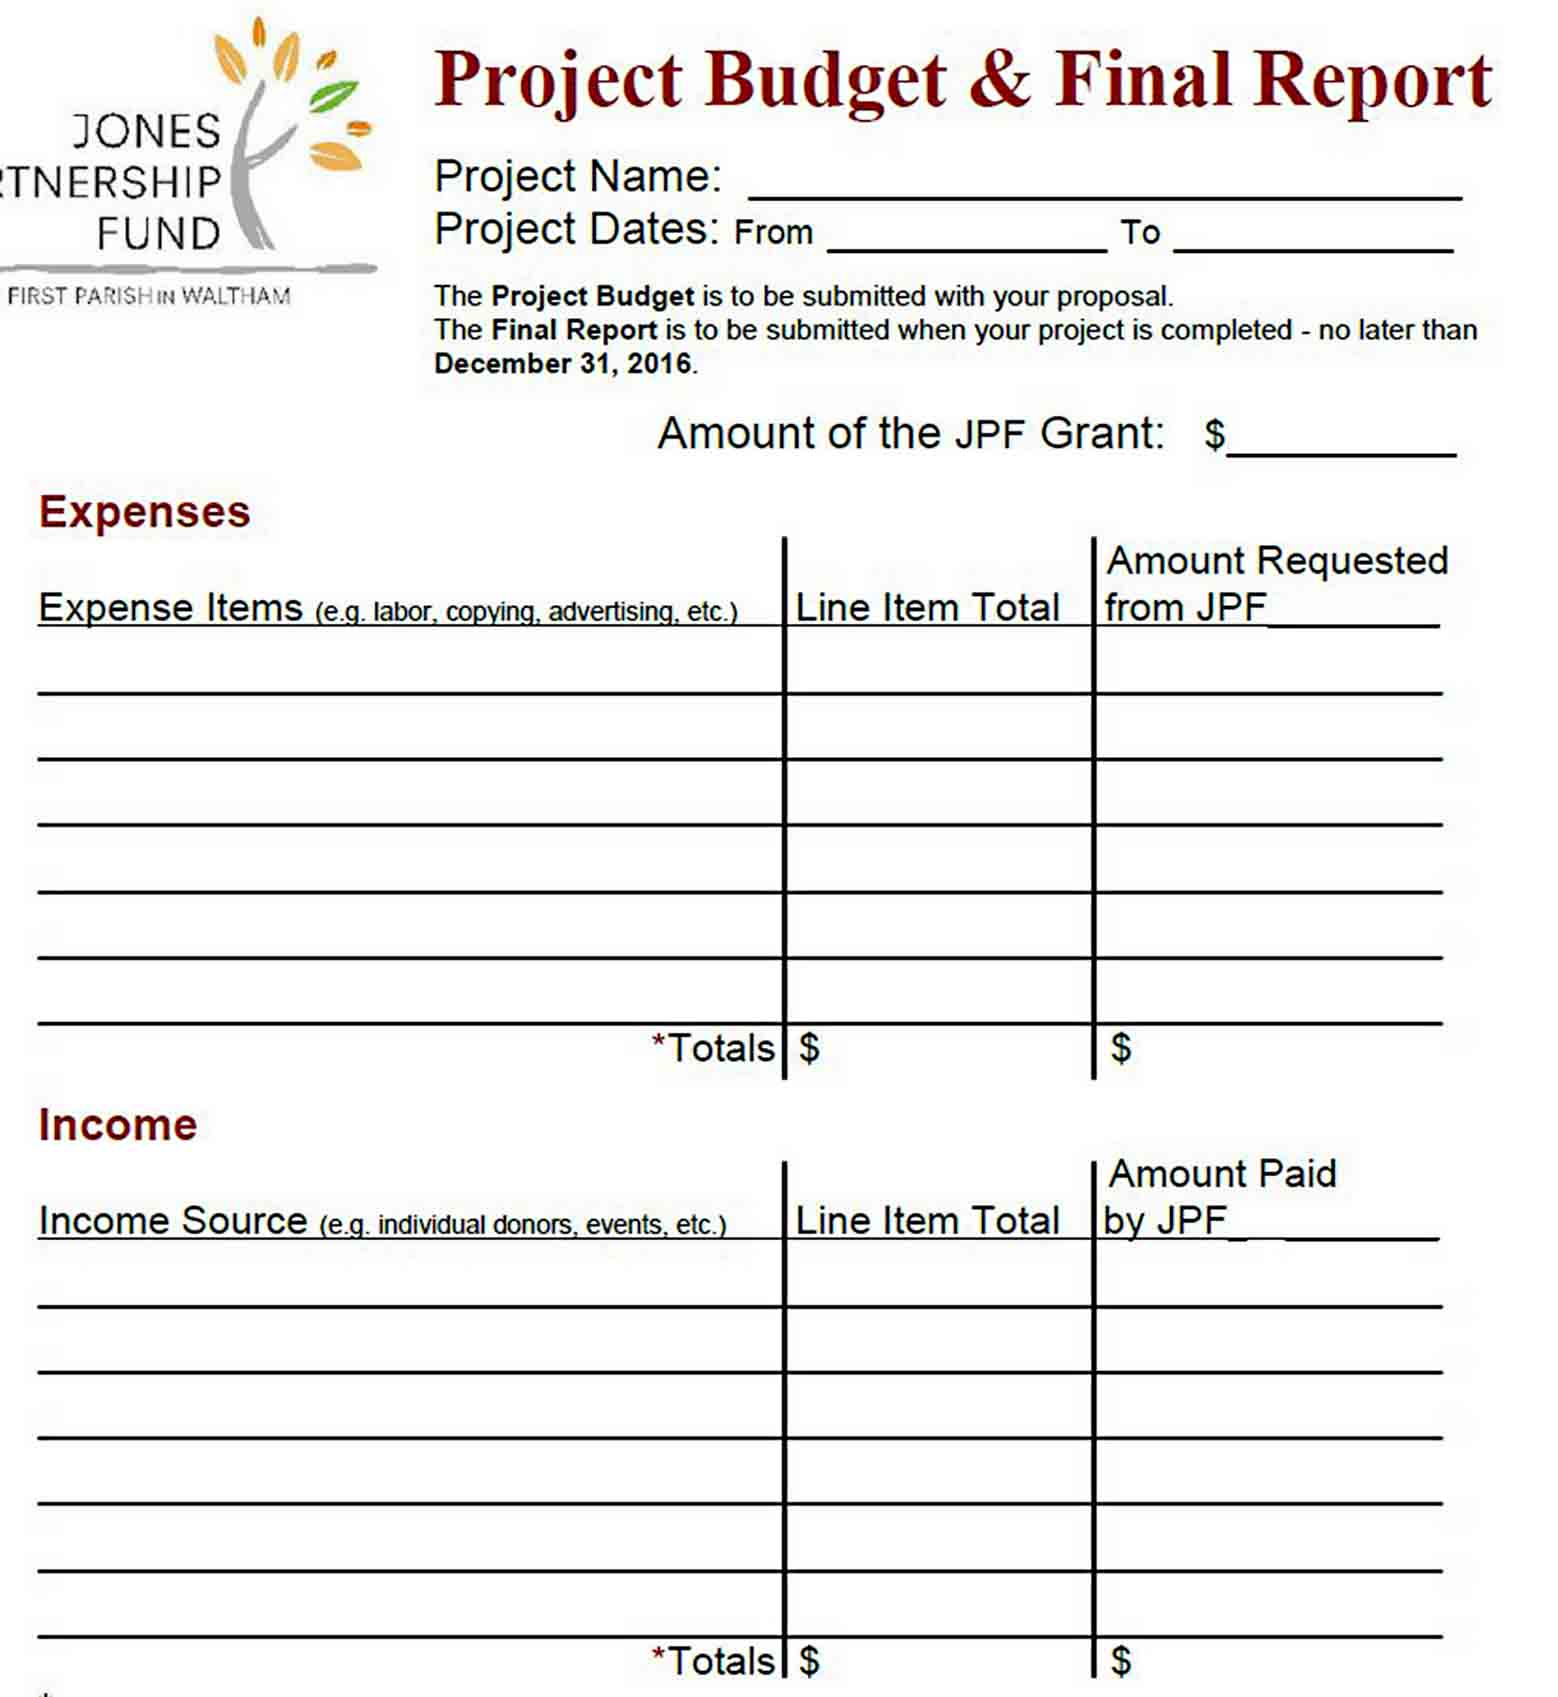 Final Project Budget Report sample